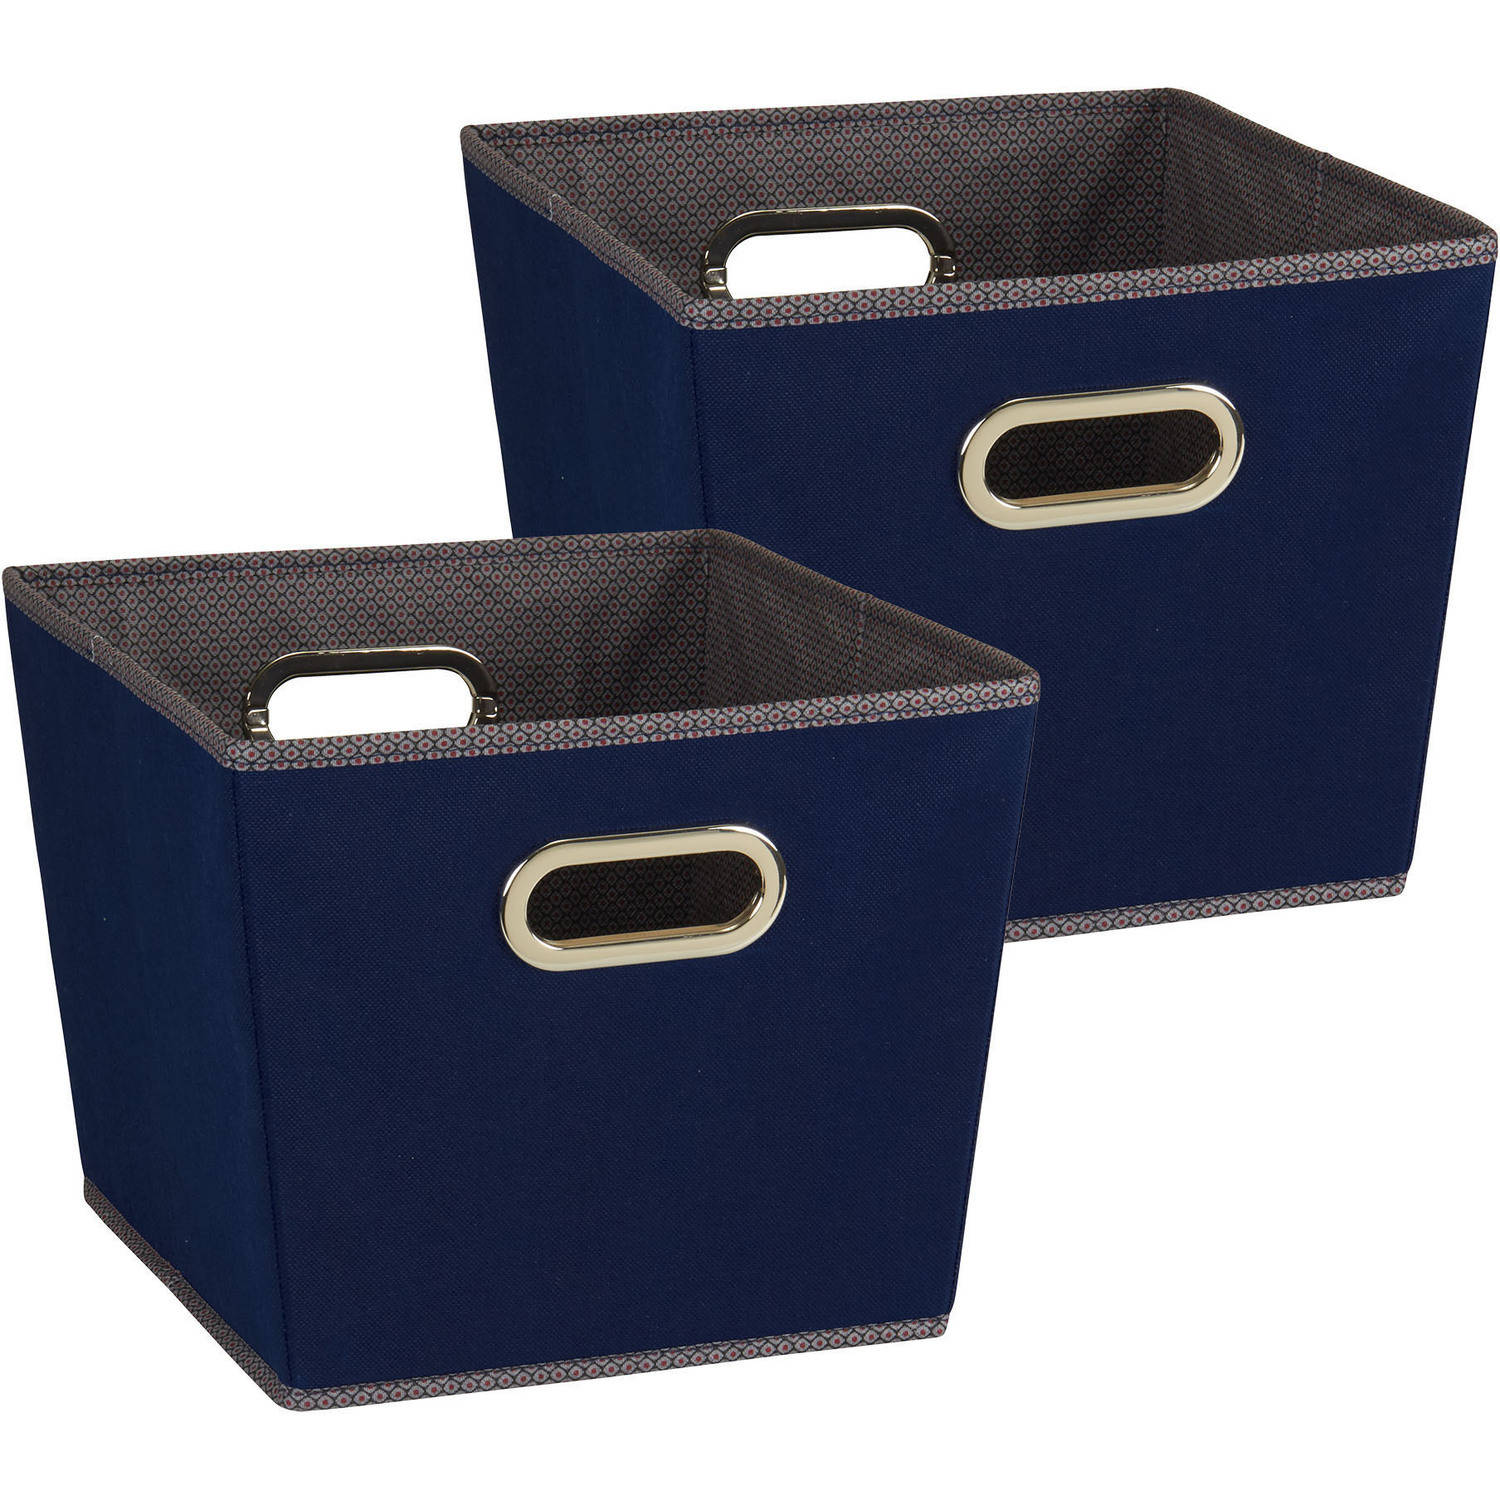 Household Essentials Medium Tapered Bins, 2-Piece Set